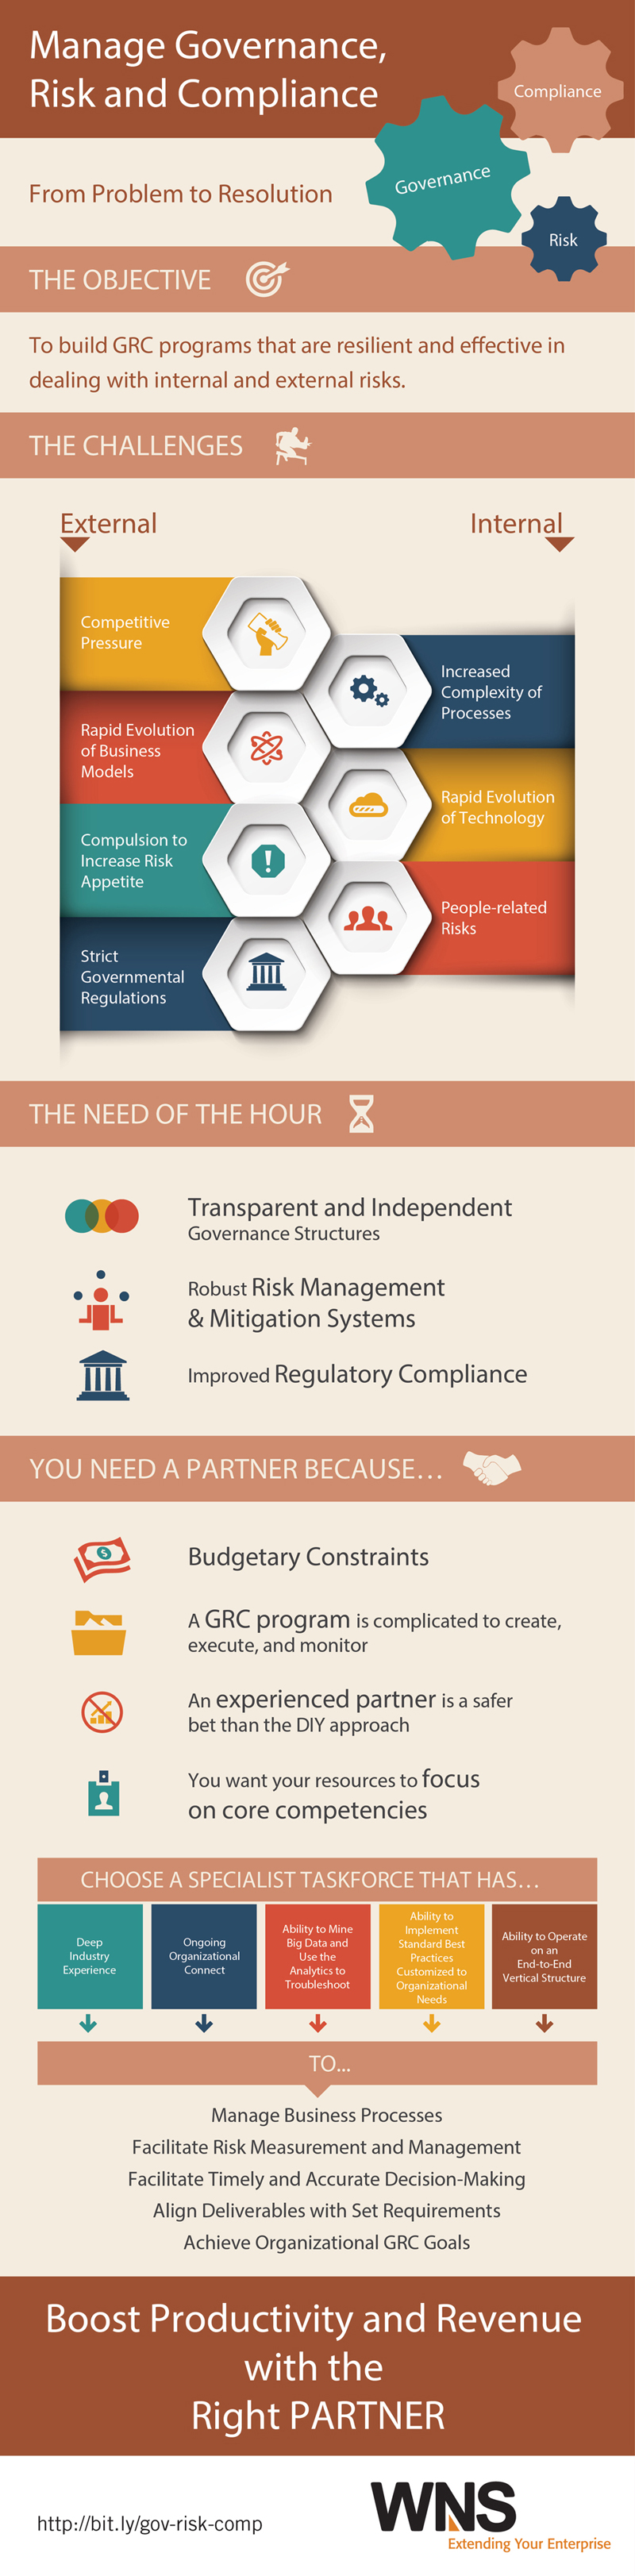 Manage Governance, Risk and Compliance